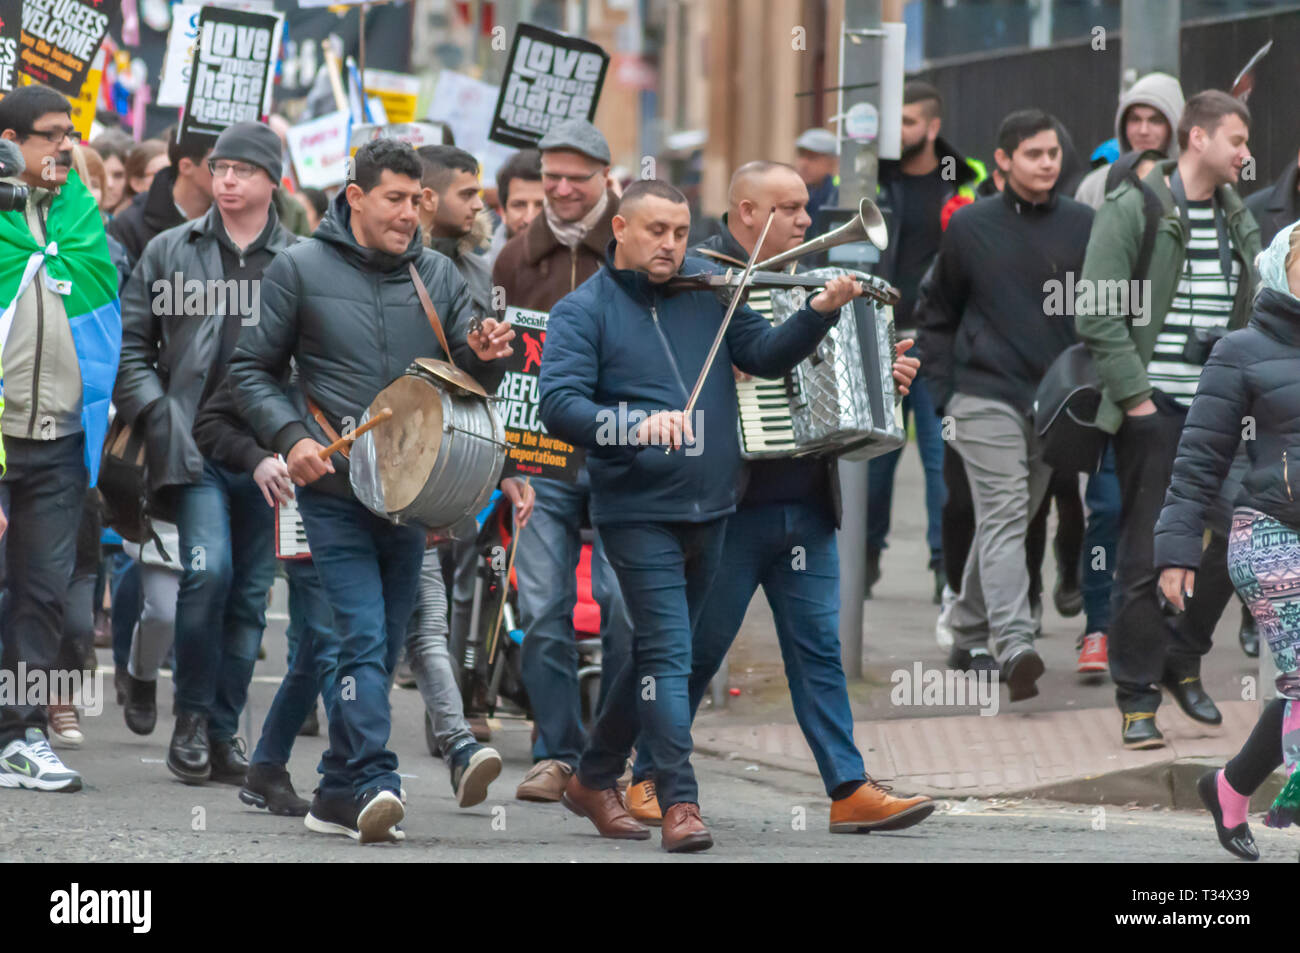 Glasgow, Scotland, UK. 6th April, 2019: Musicians marching during the annual International Roma Day community procession through the streets of Govanhill to celebrate Romani culture and raise awareness of the issues facing Romani people. Credit: Skully/Alamy Live News - Stock Image